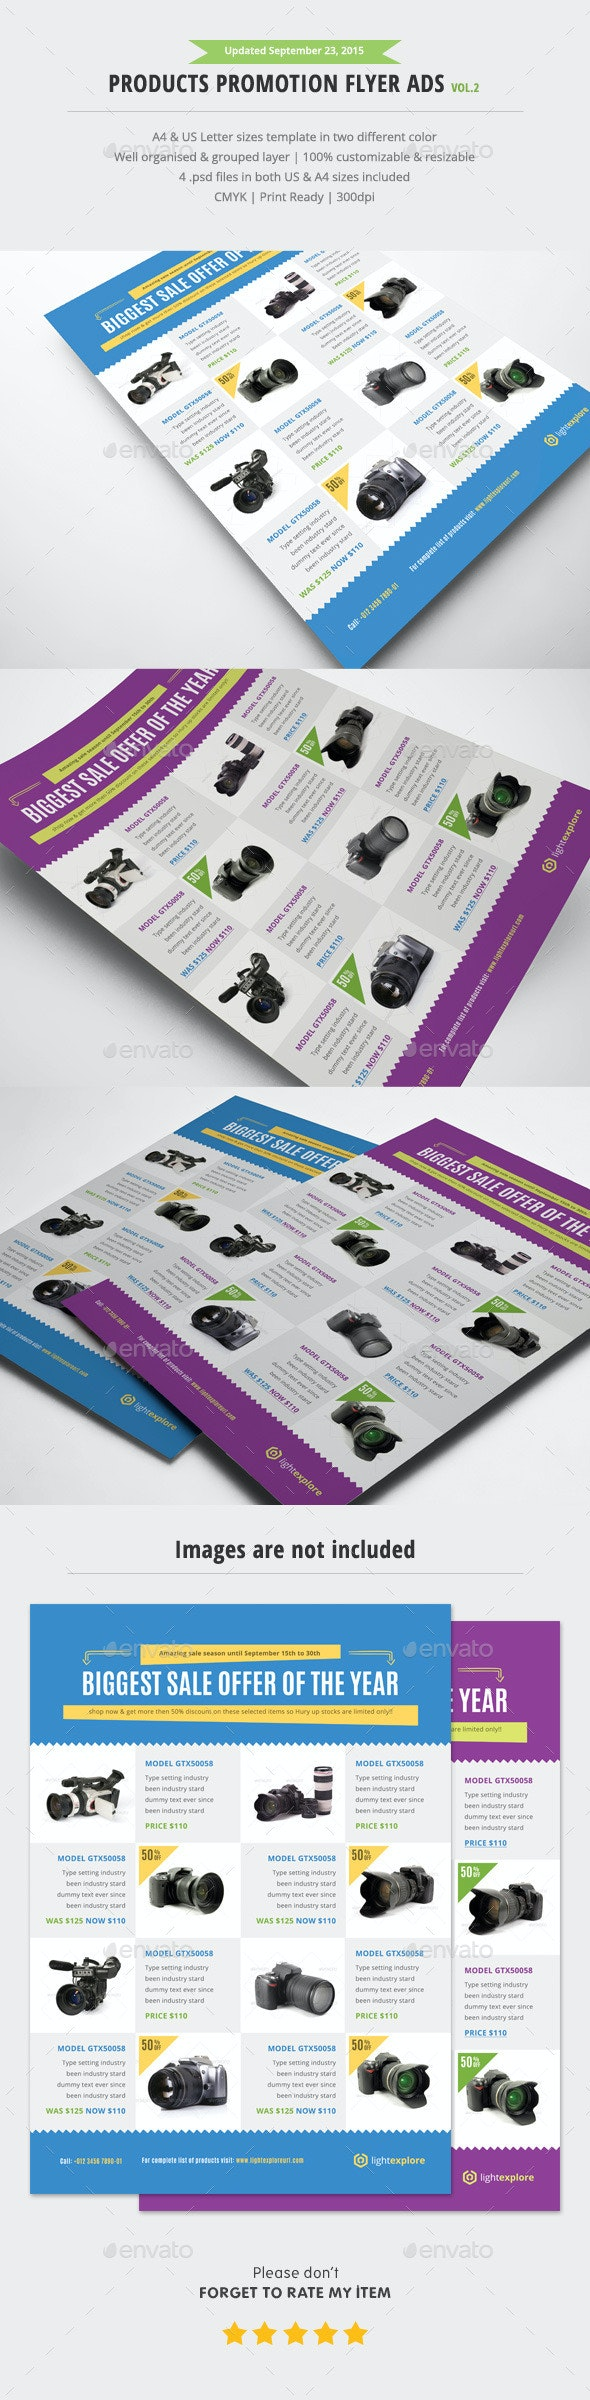 Product Promotion Flyer Ads Vol.2 - Commerce Flyers